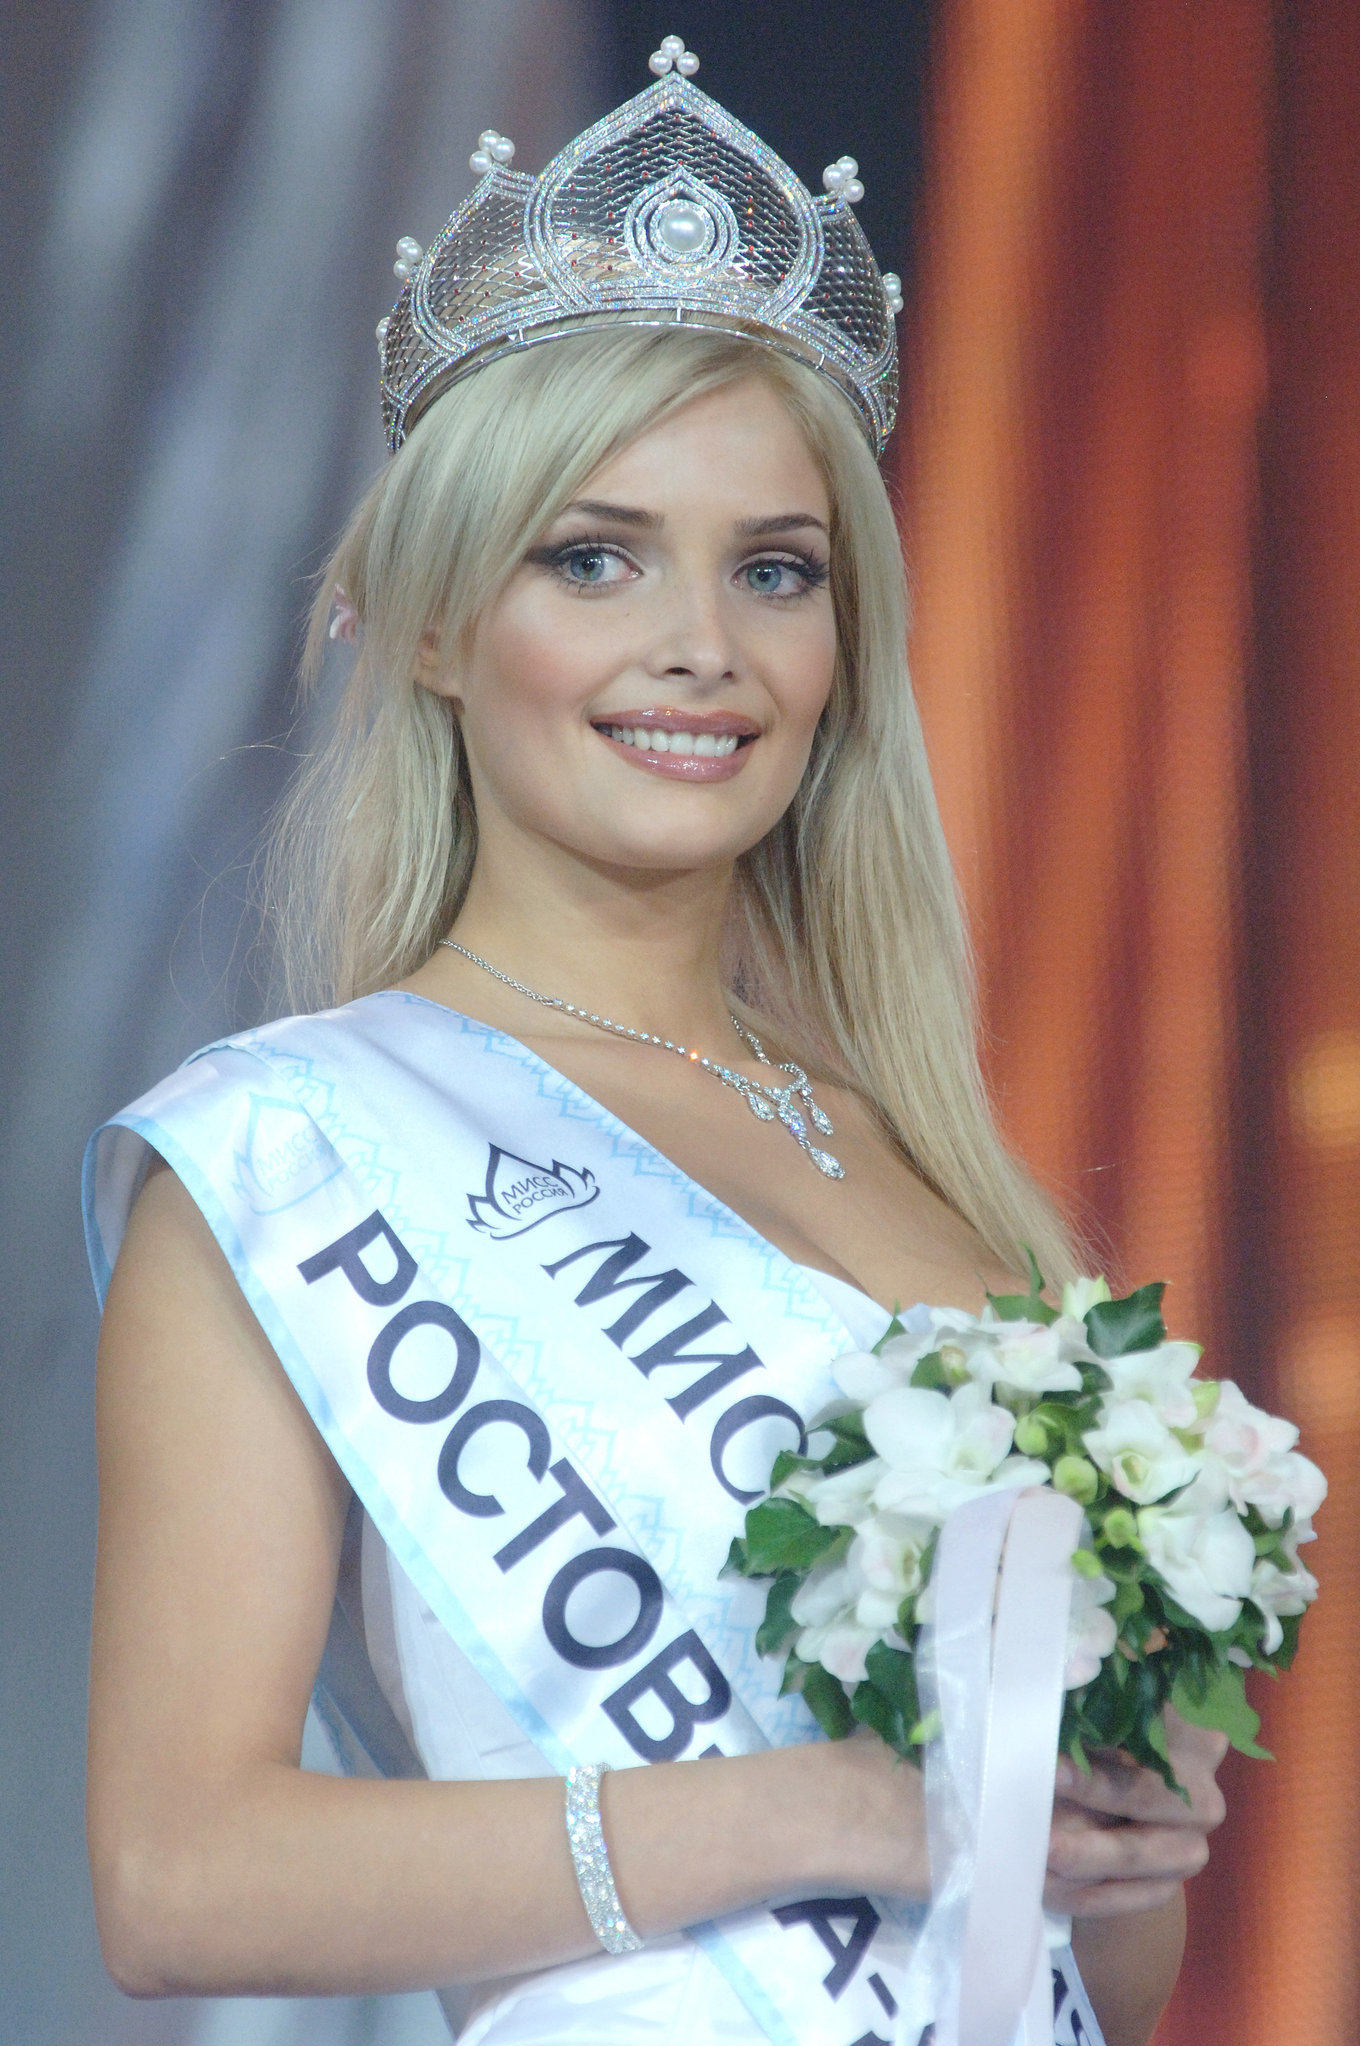 Tatiana Kotova (Rostov-on-Don, the winner of the Miss Russia 2006 competition, with its finals held at the Gostiny Dvor center